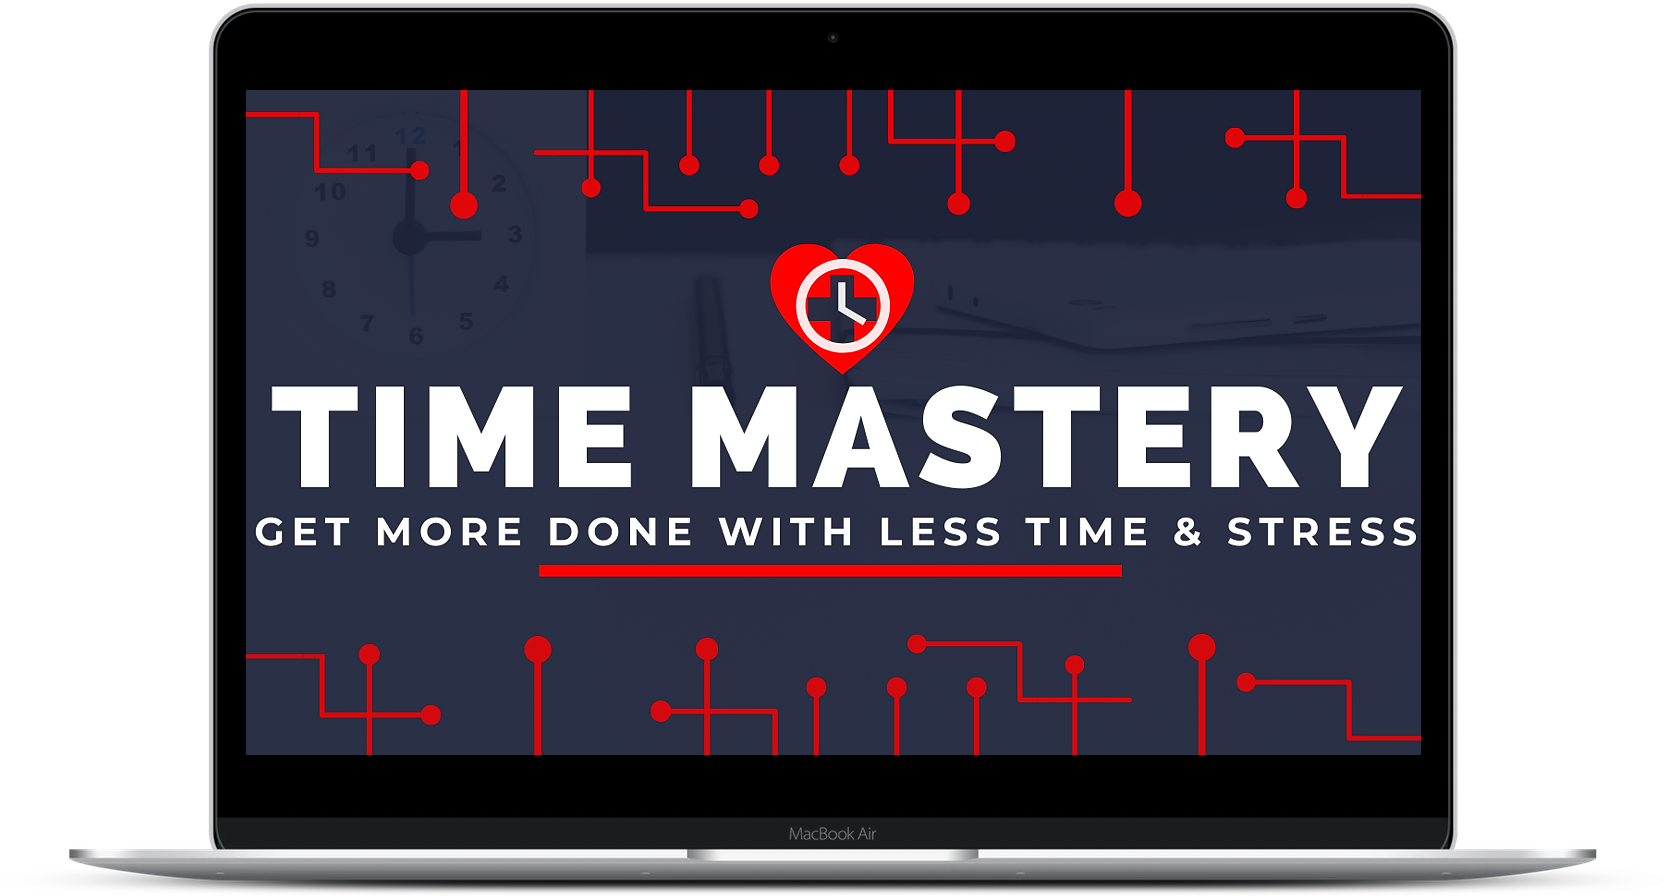 Time Mastery Program - TheMDJourney.com